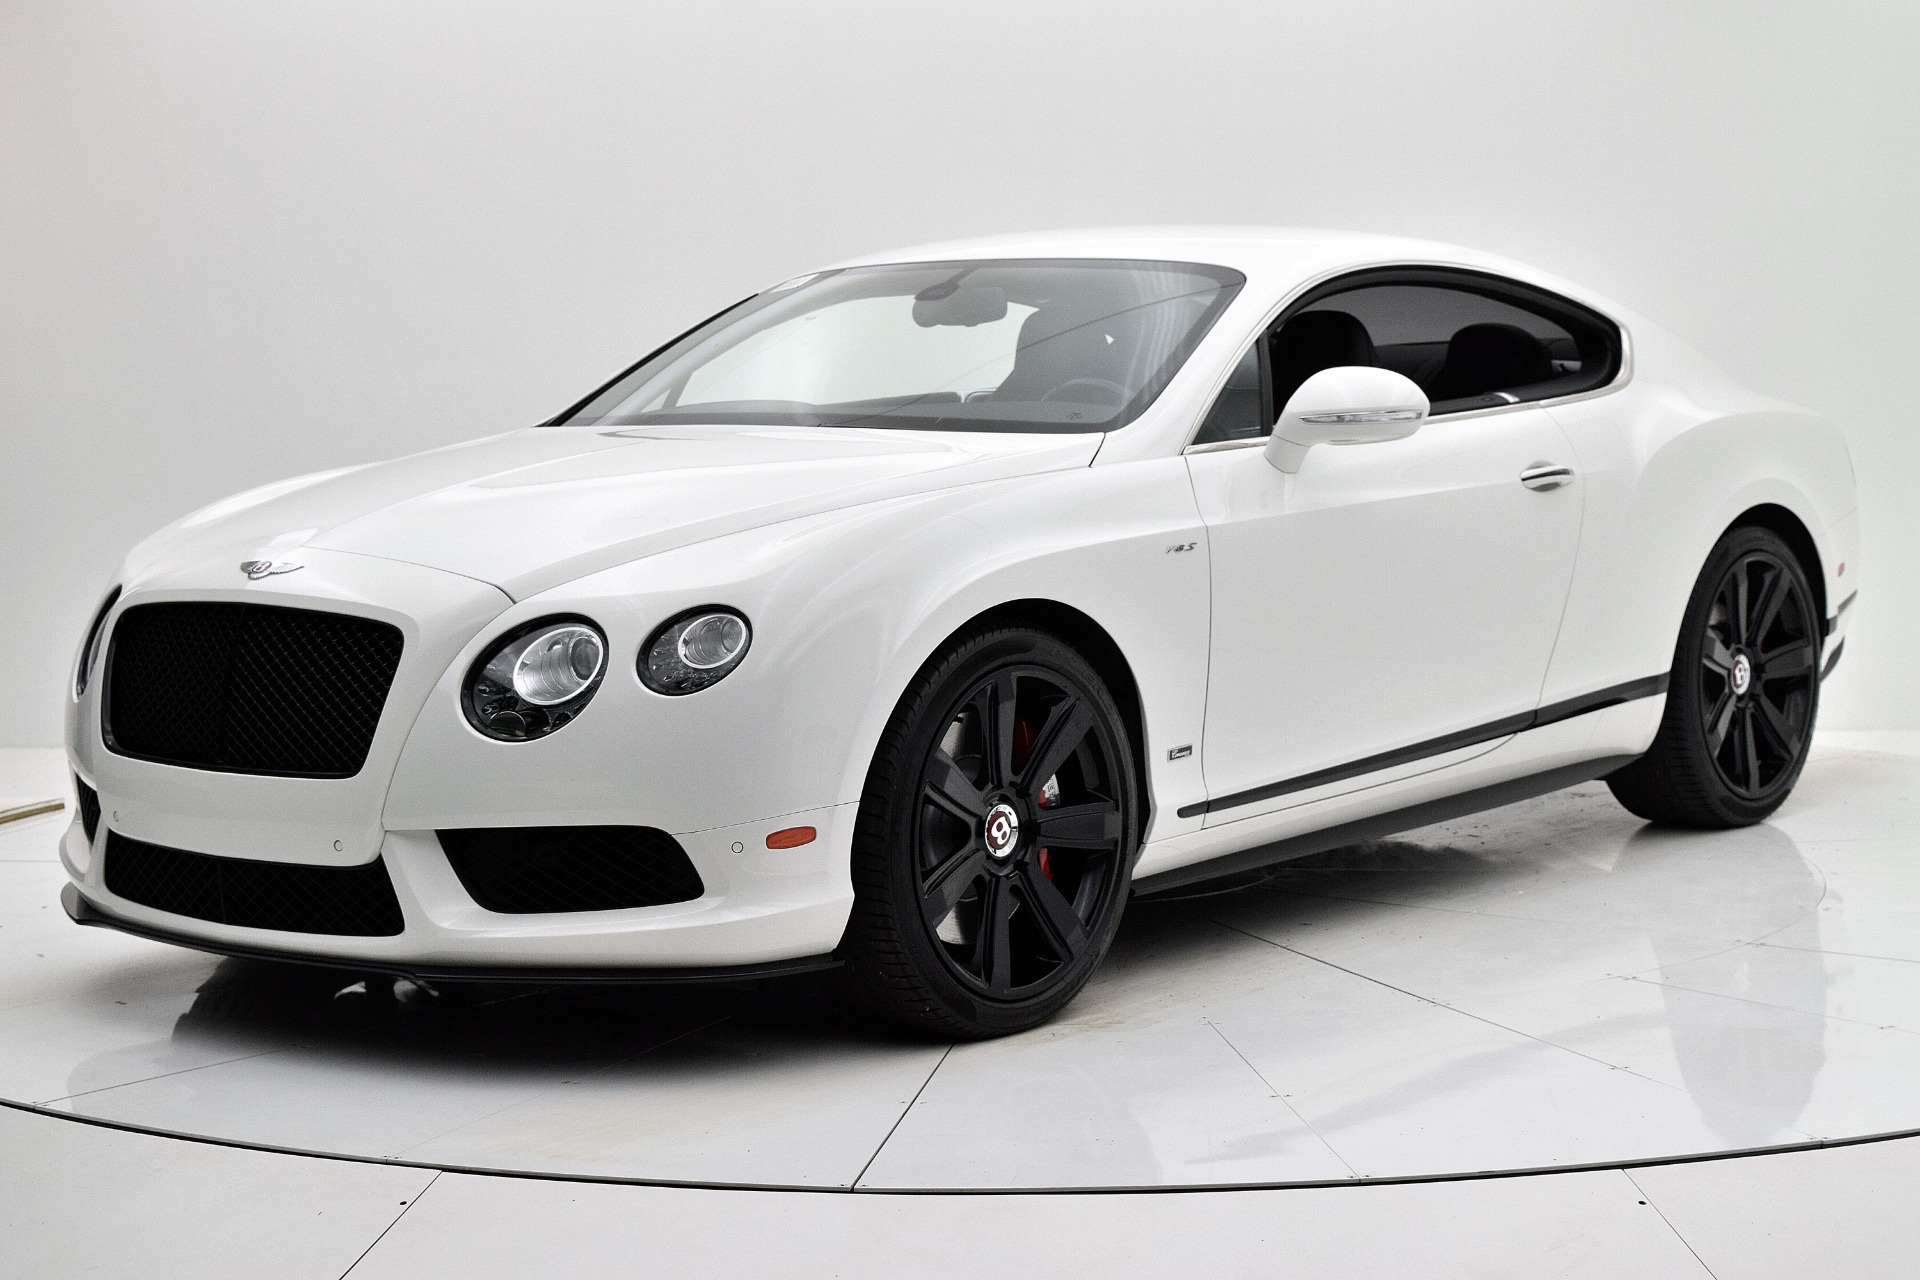 Used 2015 Bentley Continental GT V8 S for sale Sold at F.C. Kerbeck Aston Martin in Palmyra NJ 08065 2